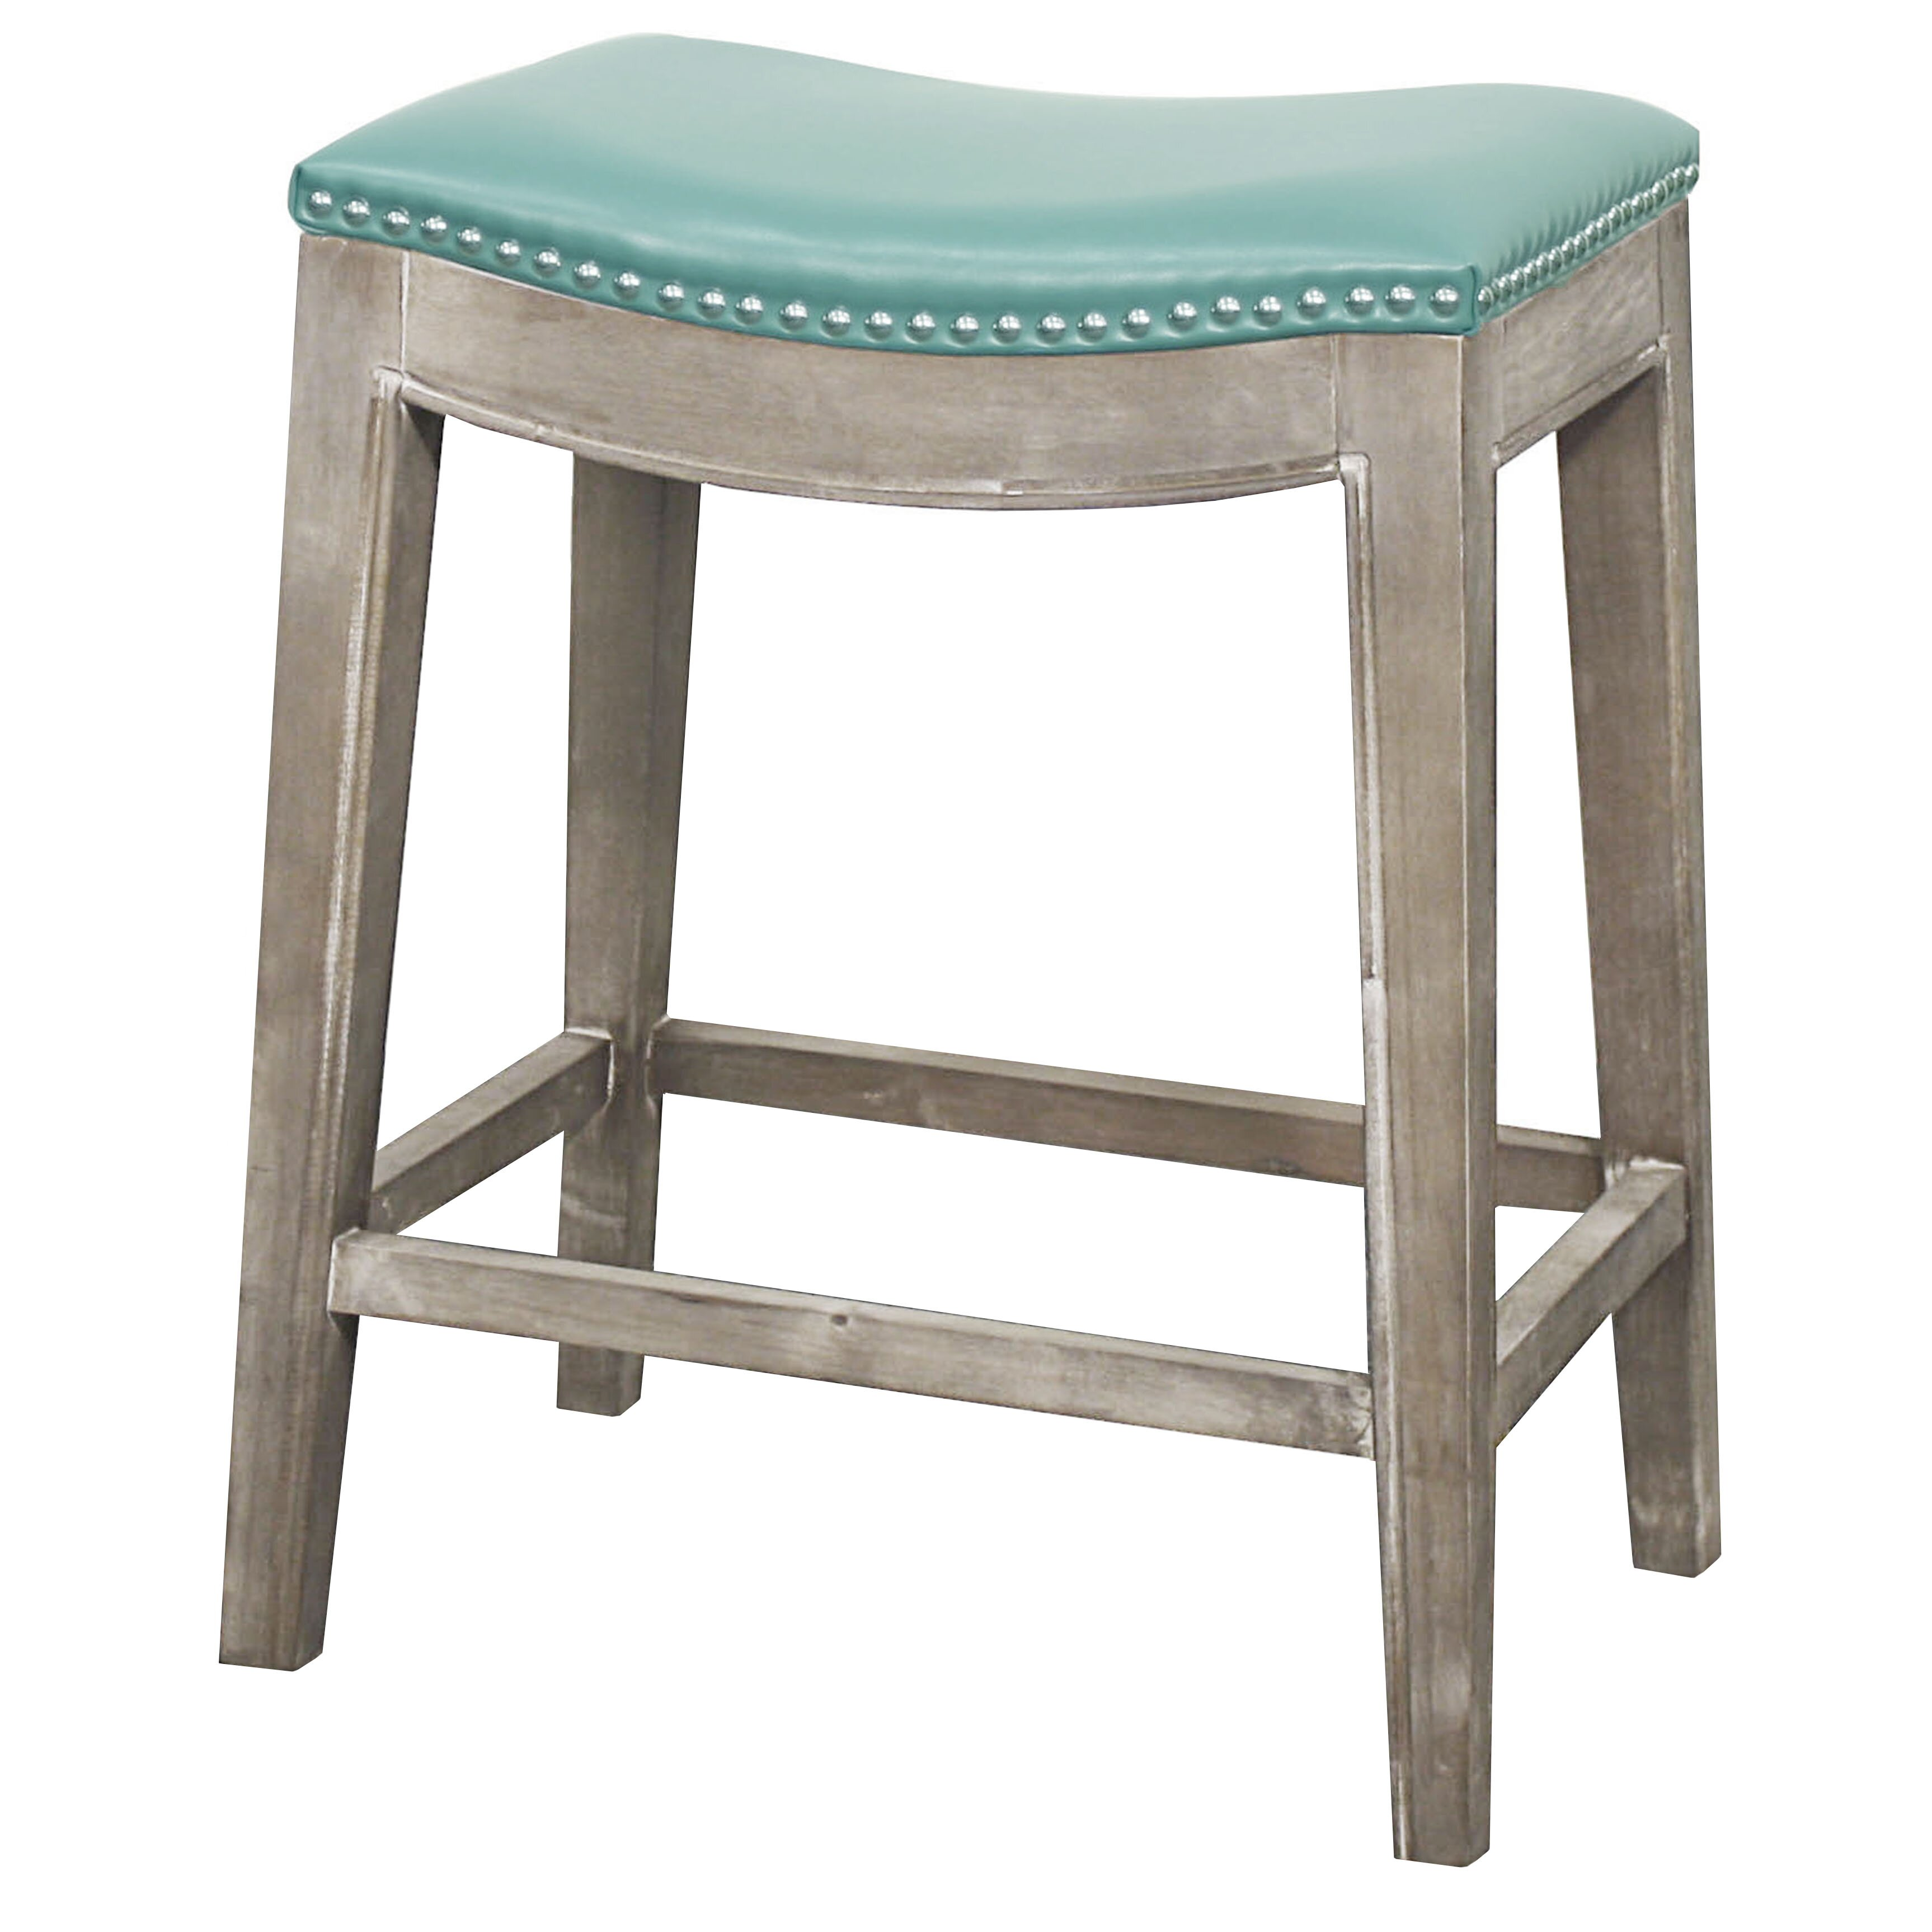 New Pacific Direct Elmo 25 Quot Bar Stool Amp Reviews Wayfair Ca